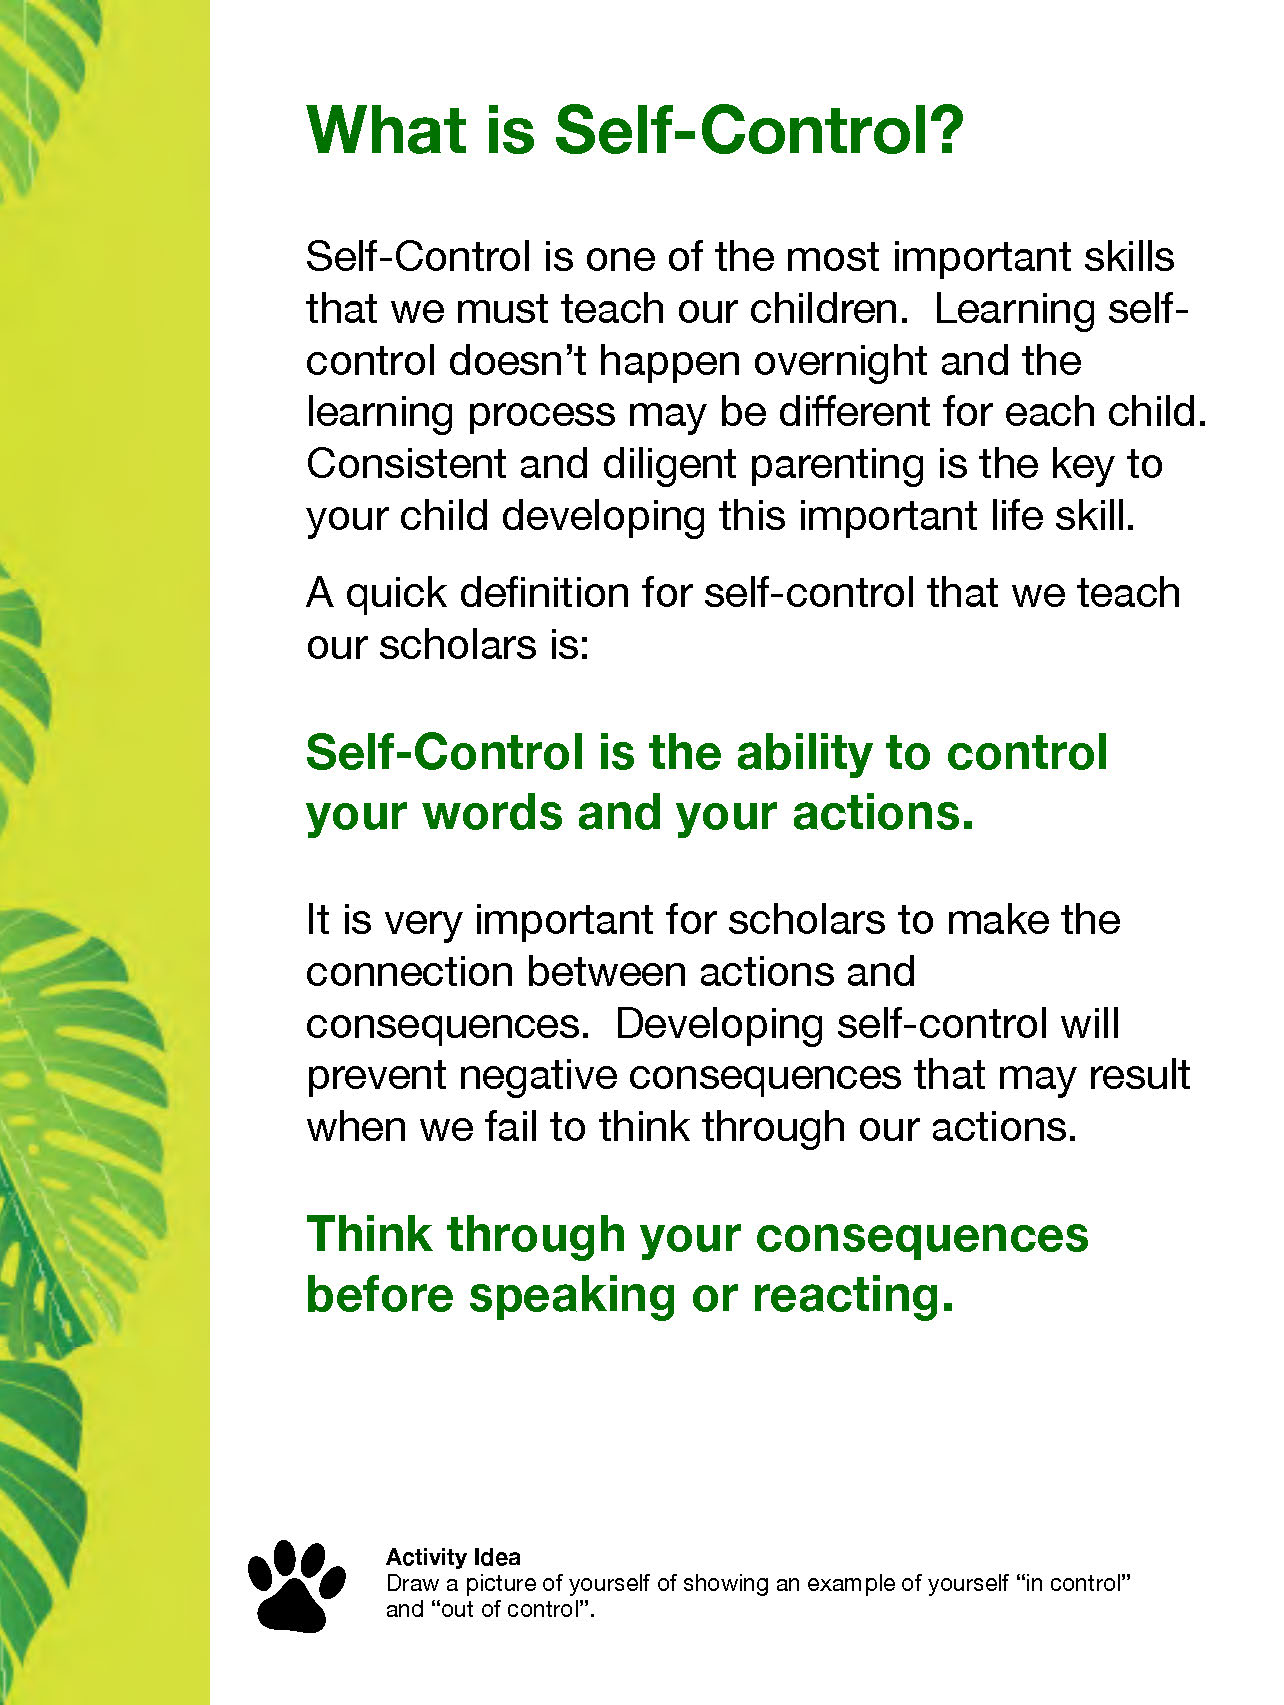 Self Control — Challenge Preparatory Charter School | Far Rockaway, NY